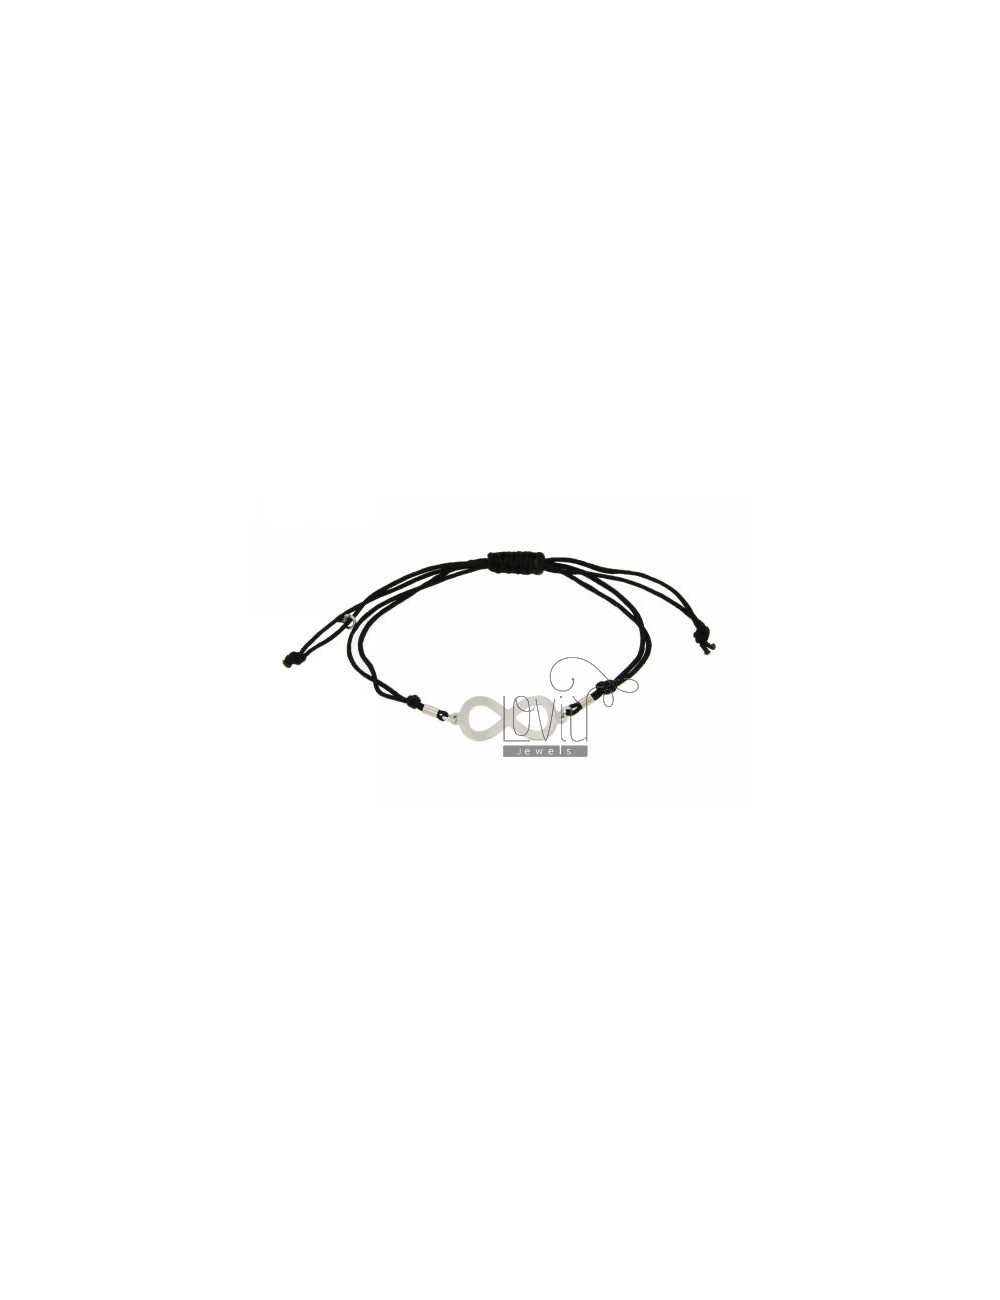 CORD BRACELET WITH BLACK SMOOTH CENTRAL INFINITE 30x12 MM SILVER RHODIUM 925